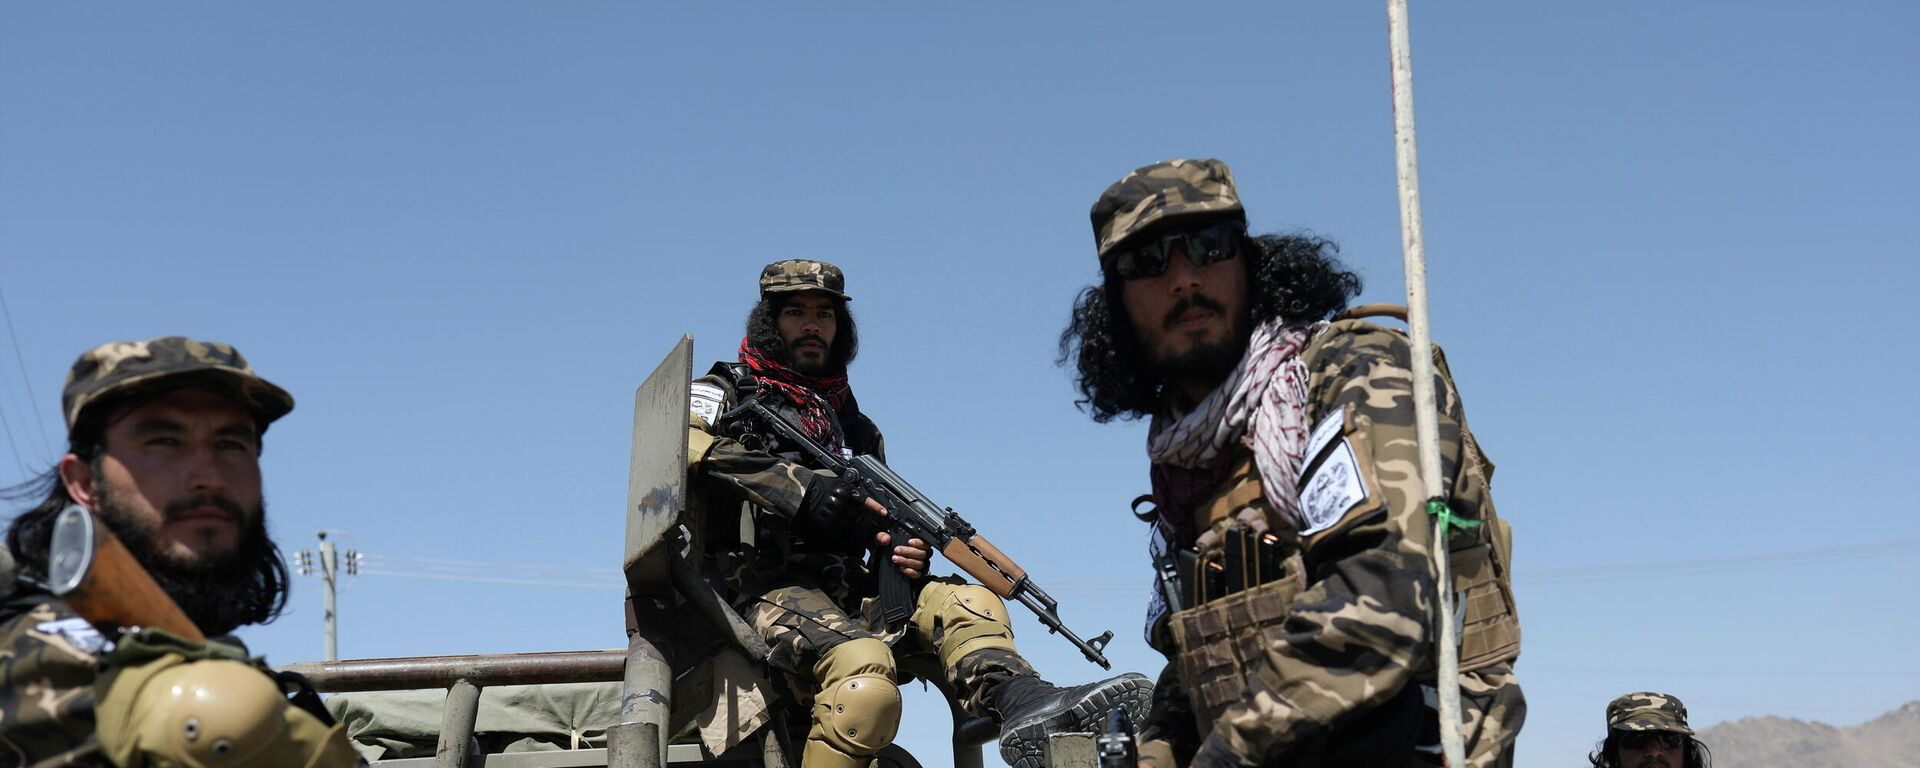 Members of the Taliban Intelligence Special Forces guard the military airfield in Kabul - Sputnik International, 1920, 13.09.2021